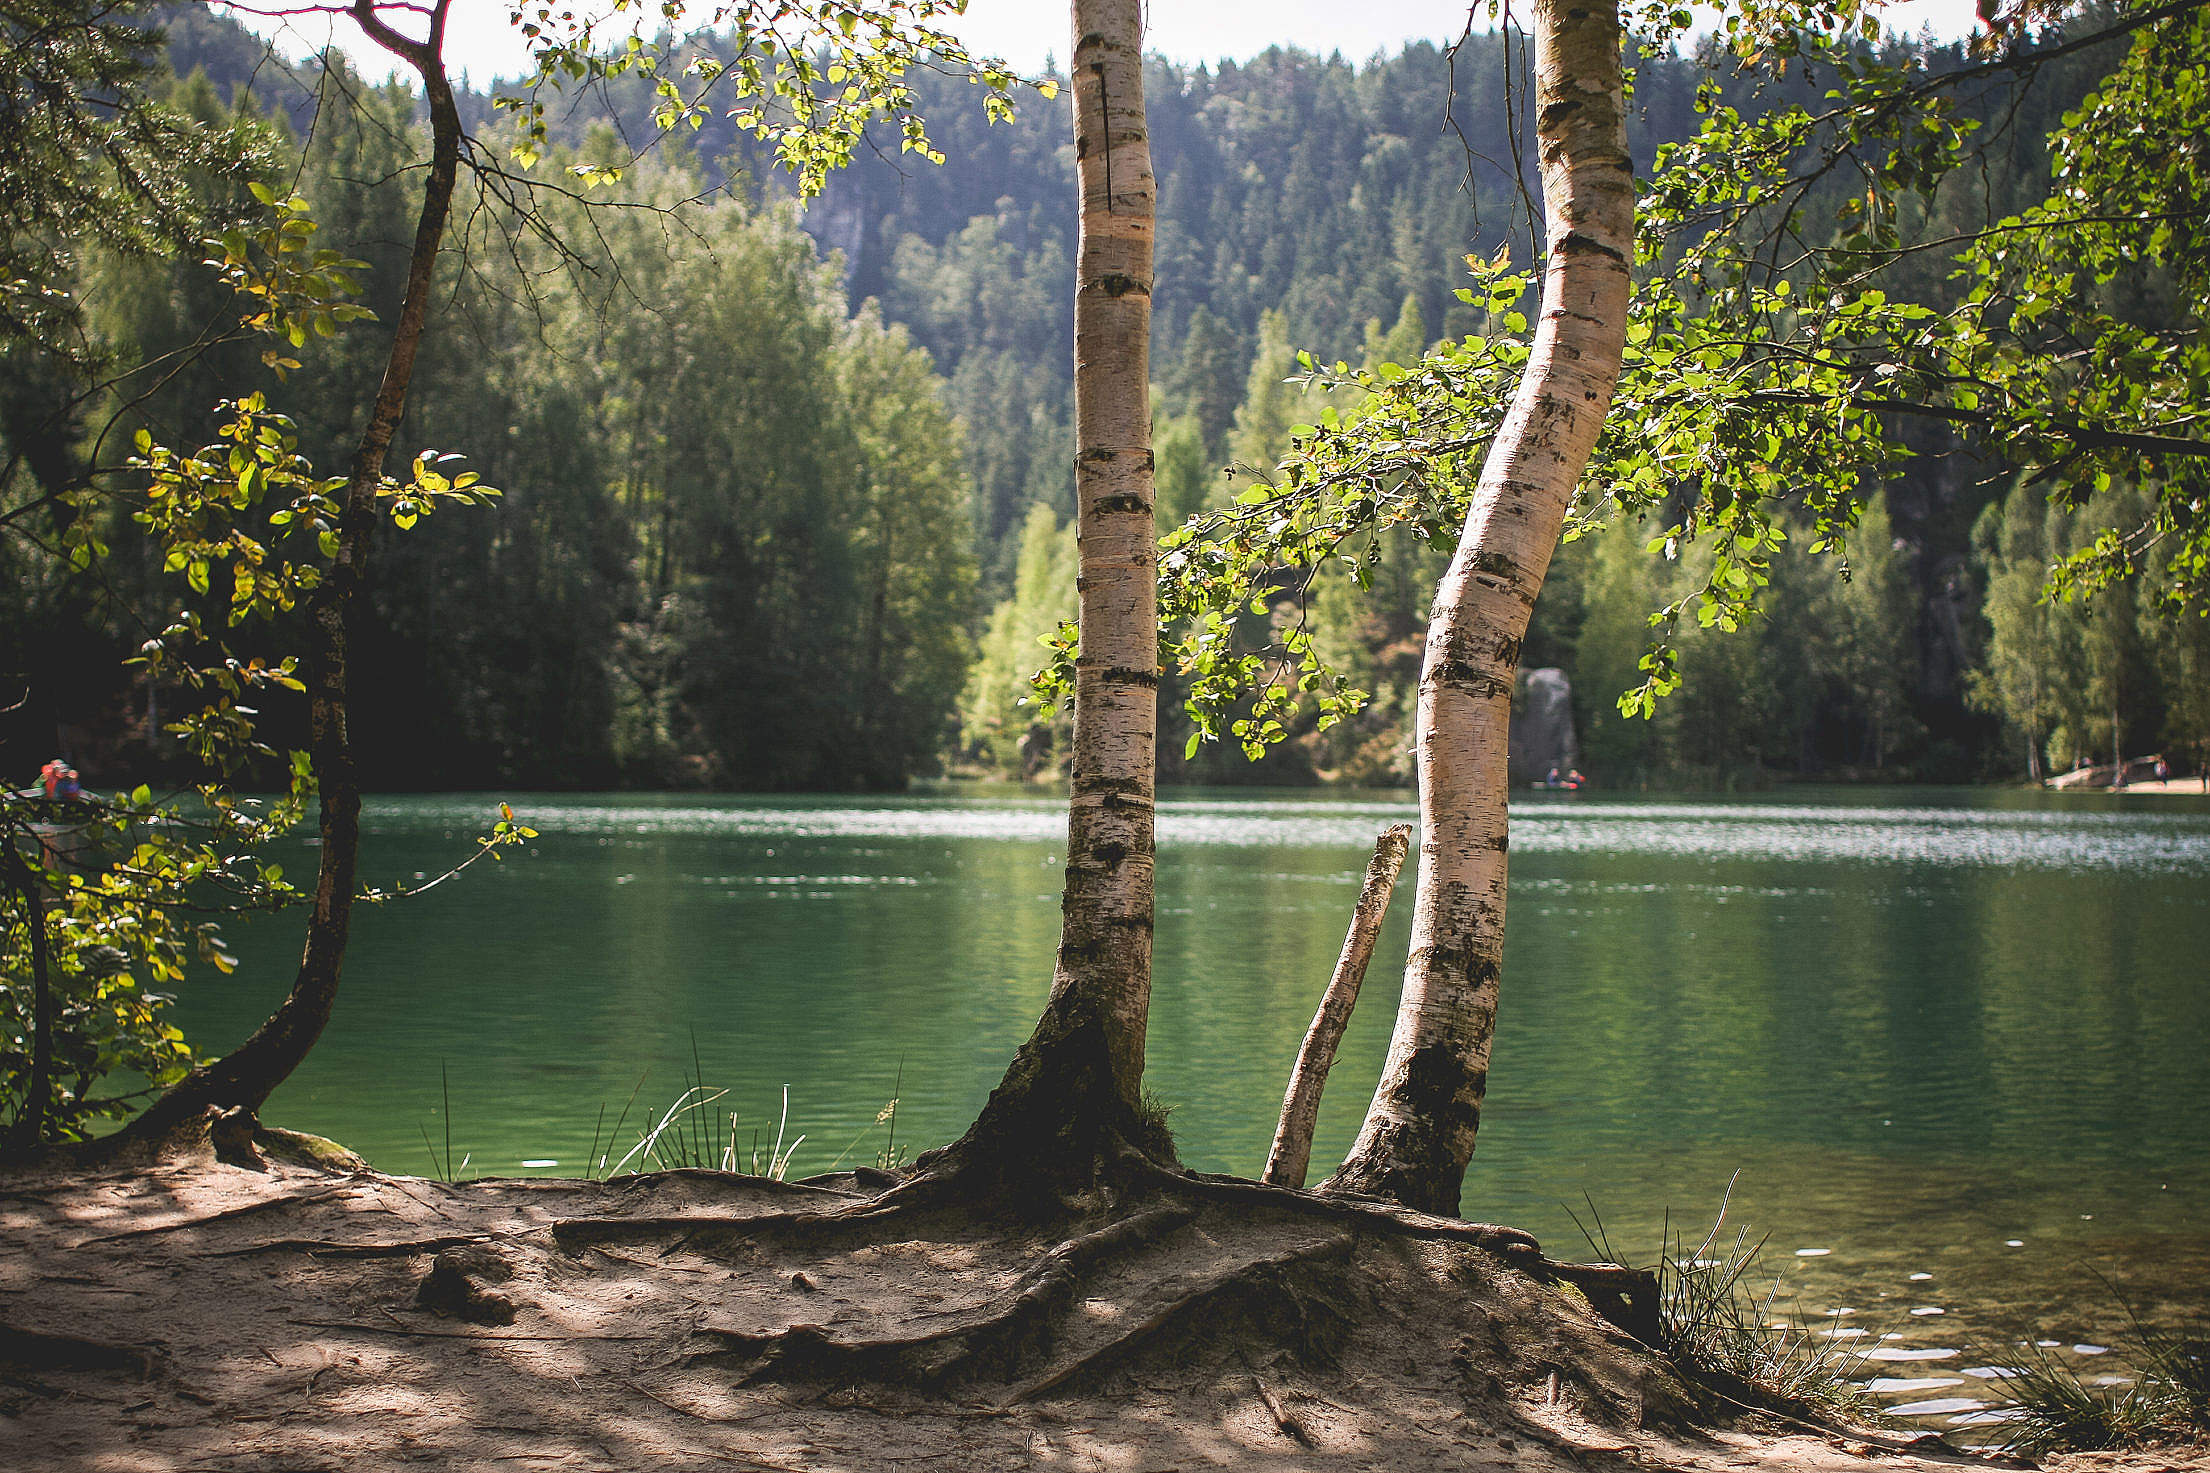 Lakeside Nature in Czech Republic Free Stock Photo